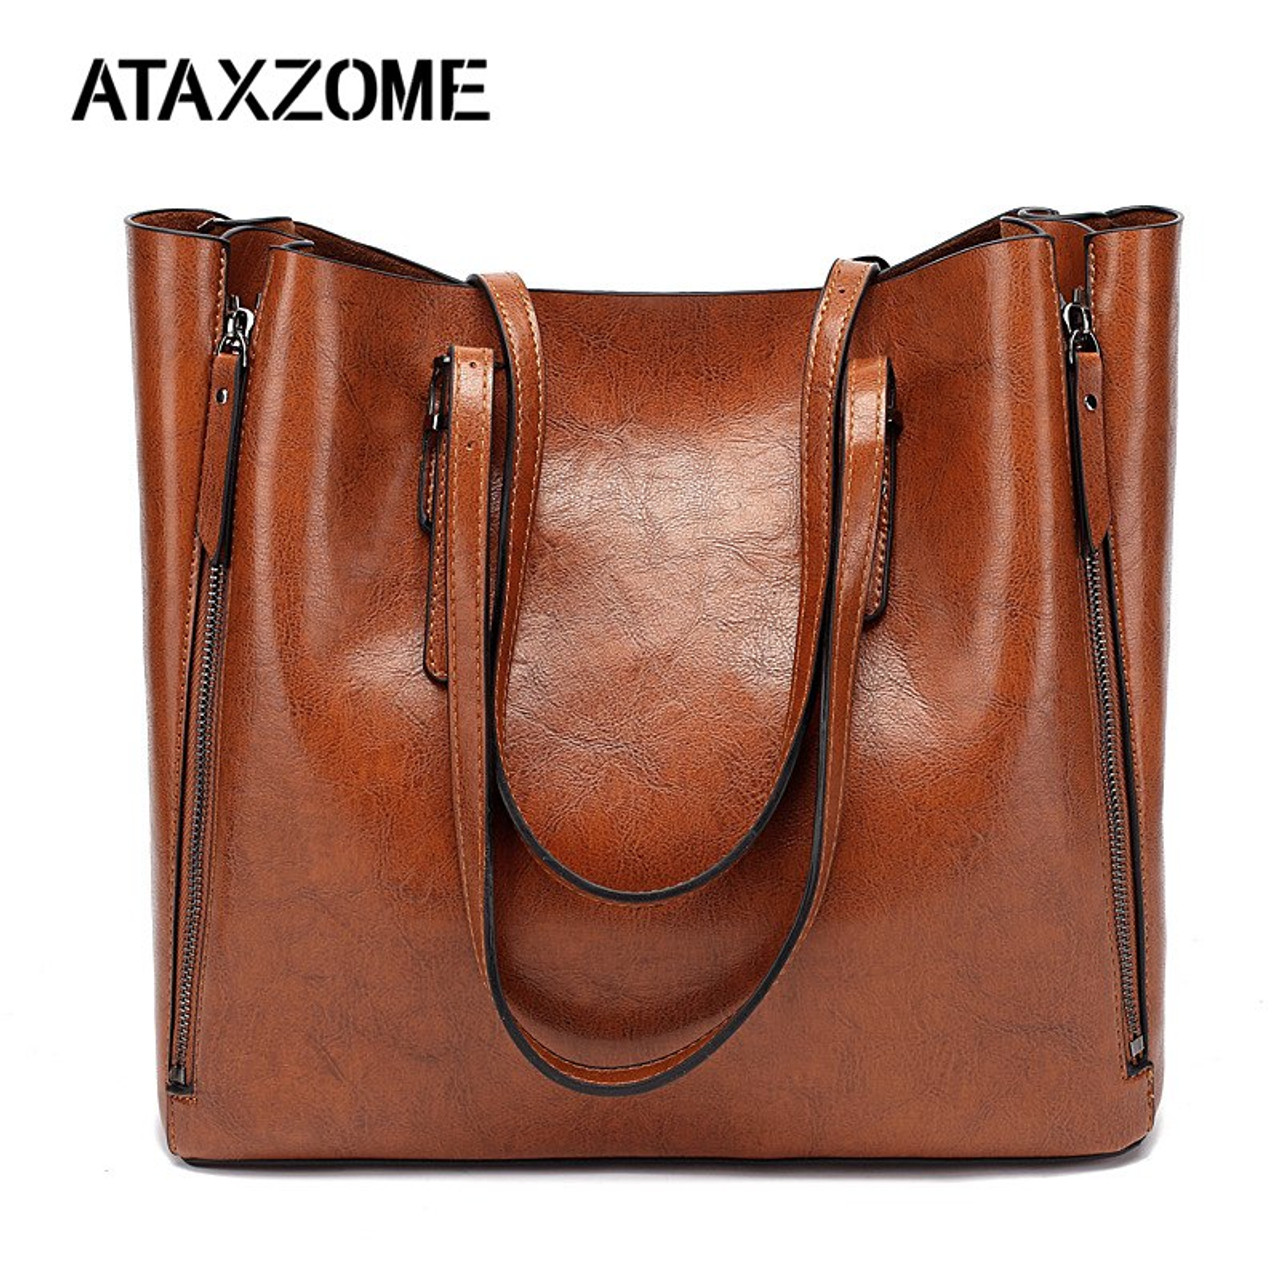 40dcbb99ac ATAXZOME Oil Wax PU Leather Handbags Shoulder Hand bag Large Capacity OL Women  Bags for 2018 ...